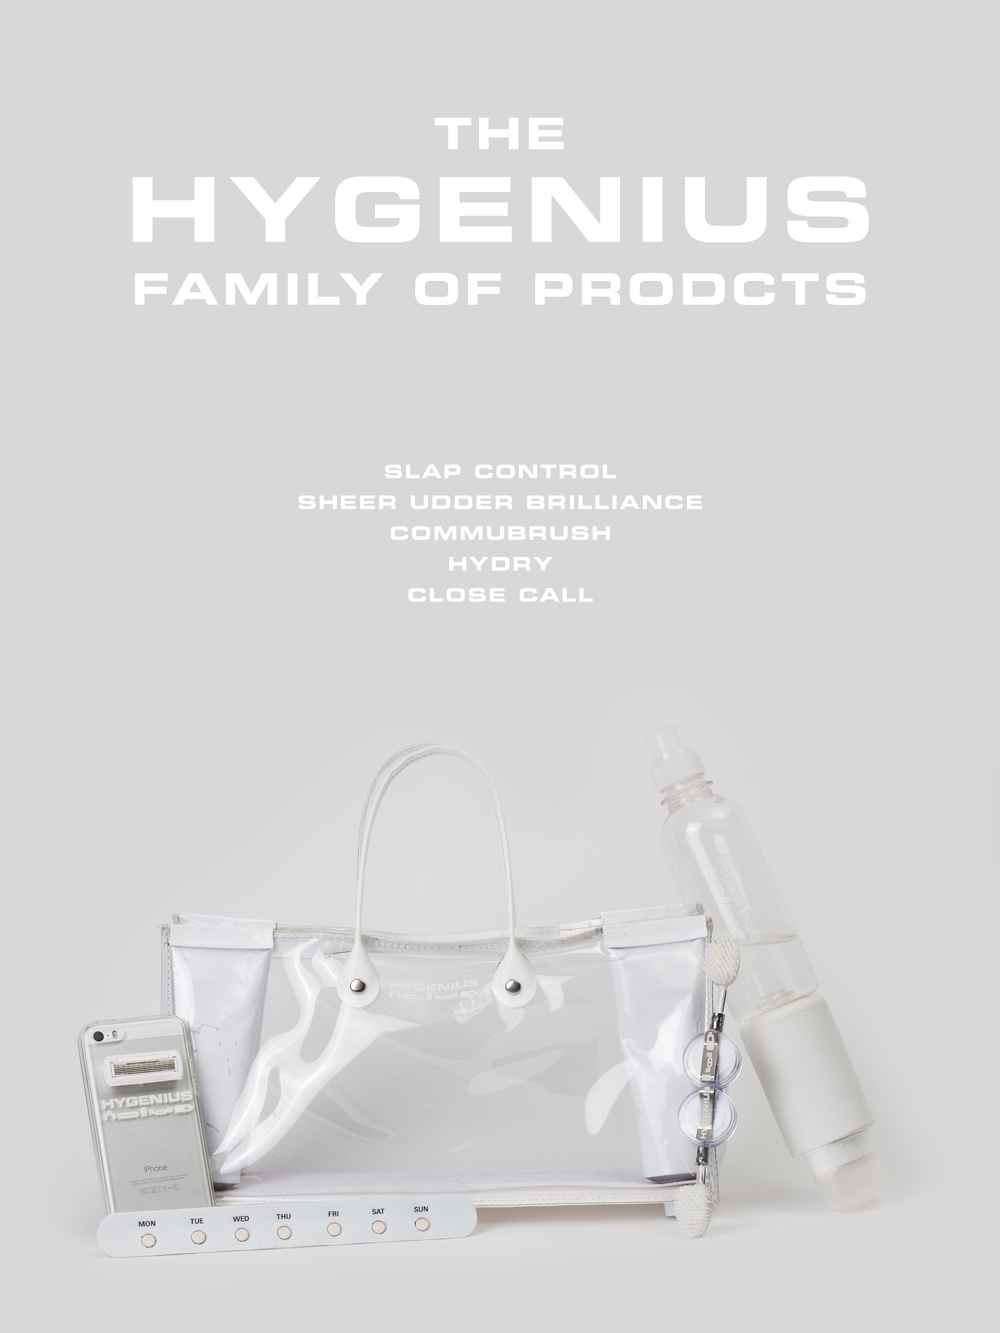 THE HYGENIUS FAMILY OF PRODUCTS